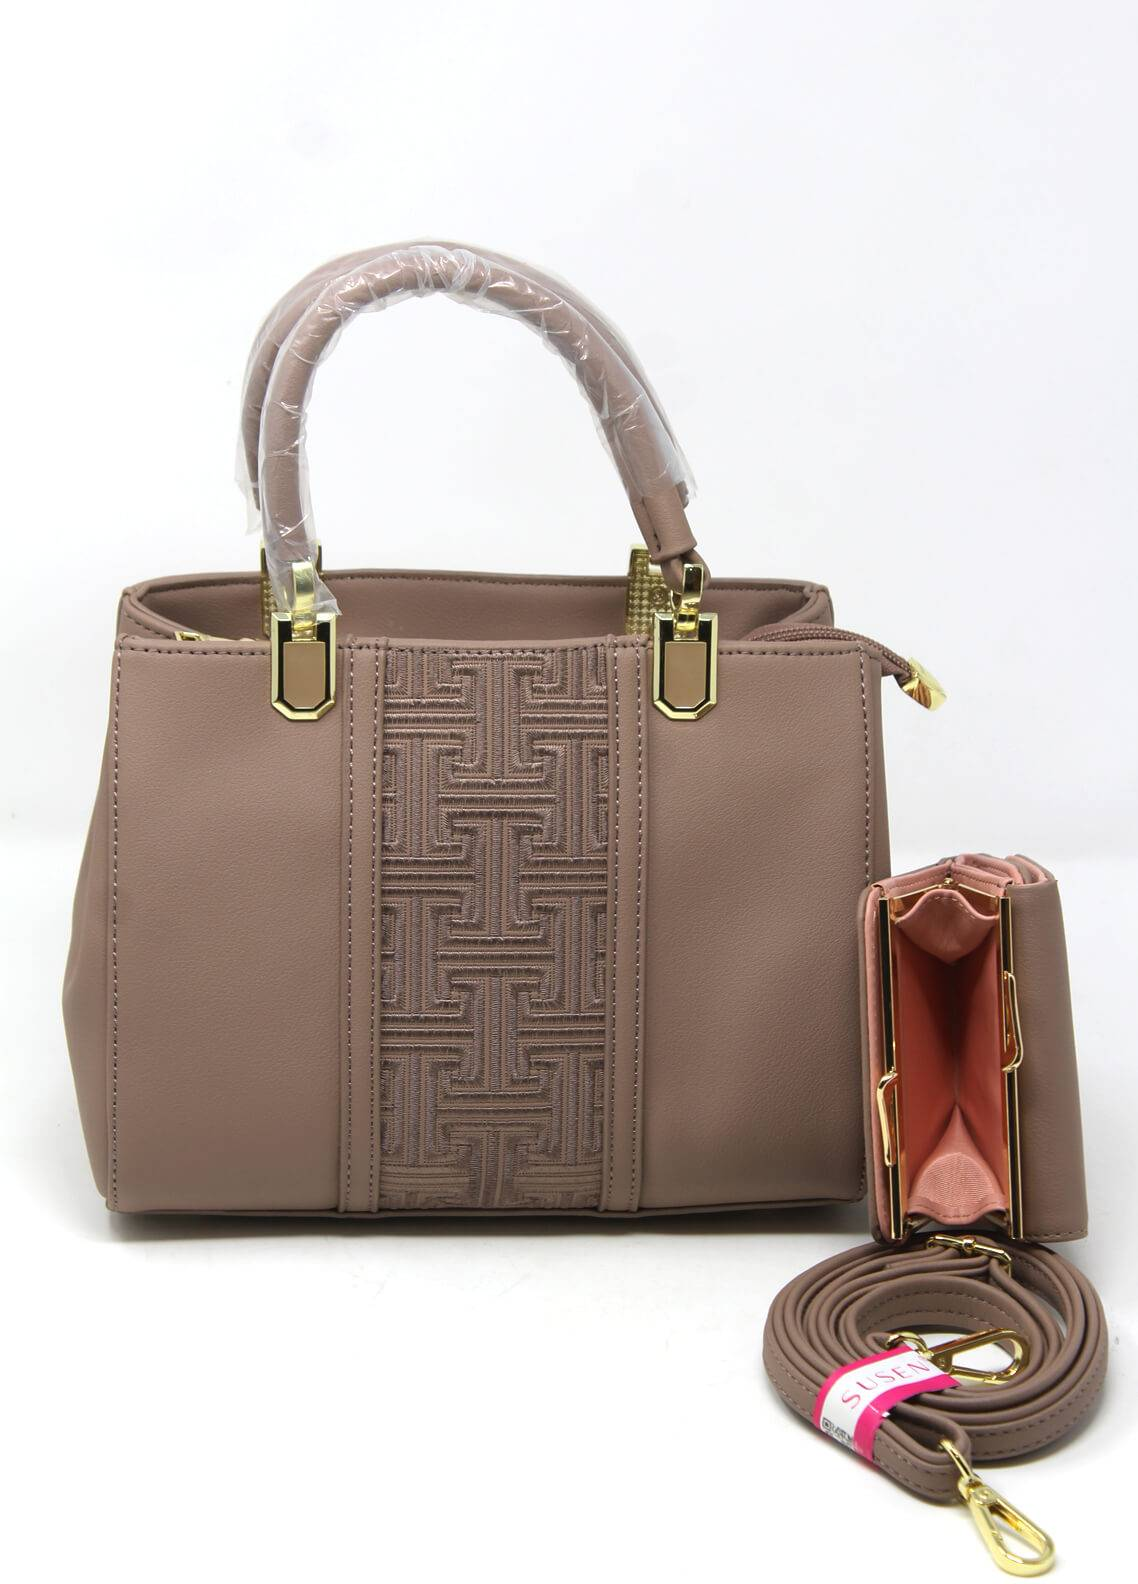 Susen PU Leather Satchels Bag for Women - Beige with Plain Texture